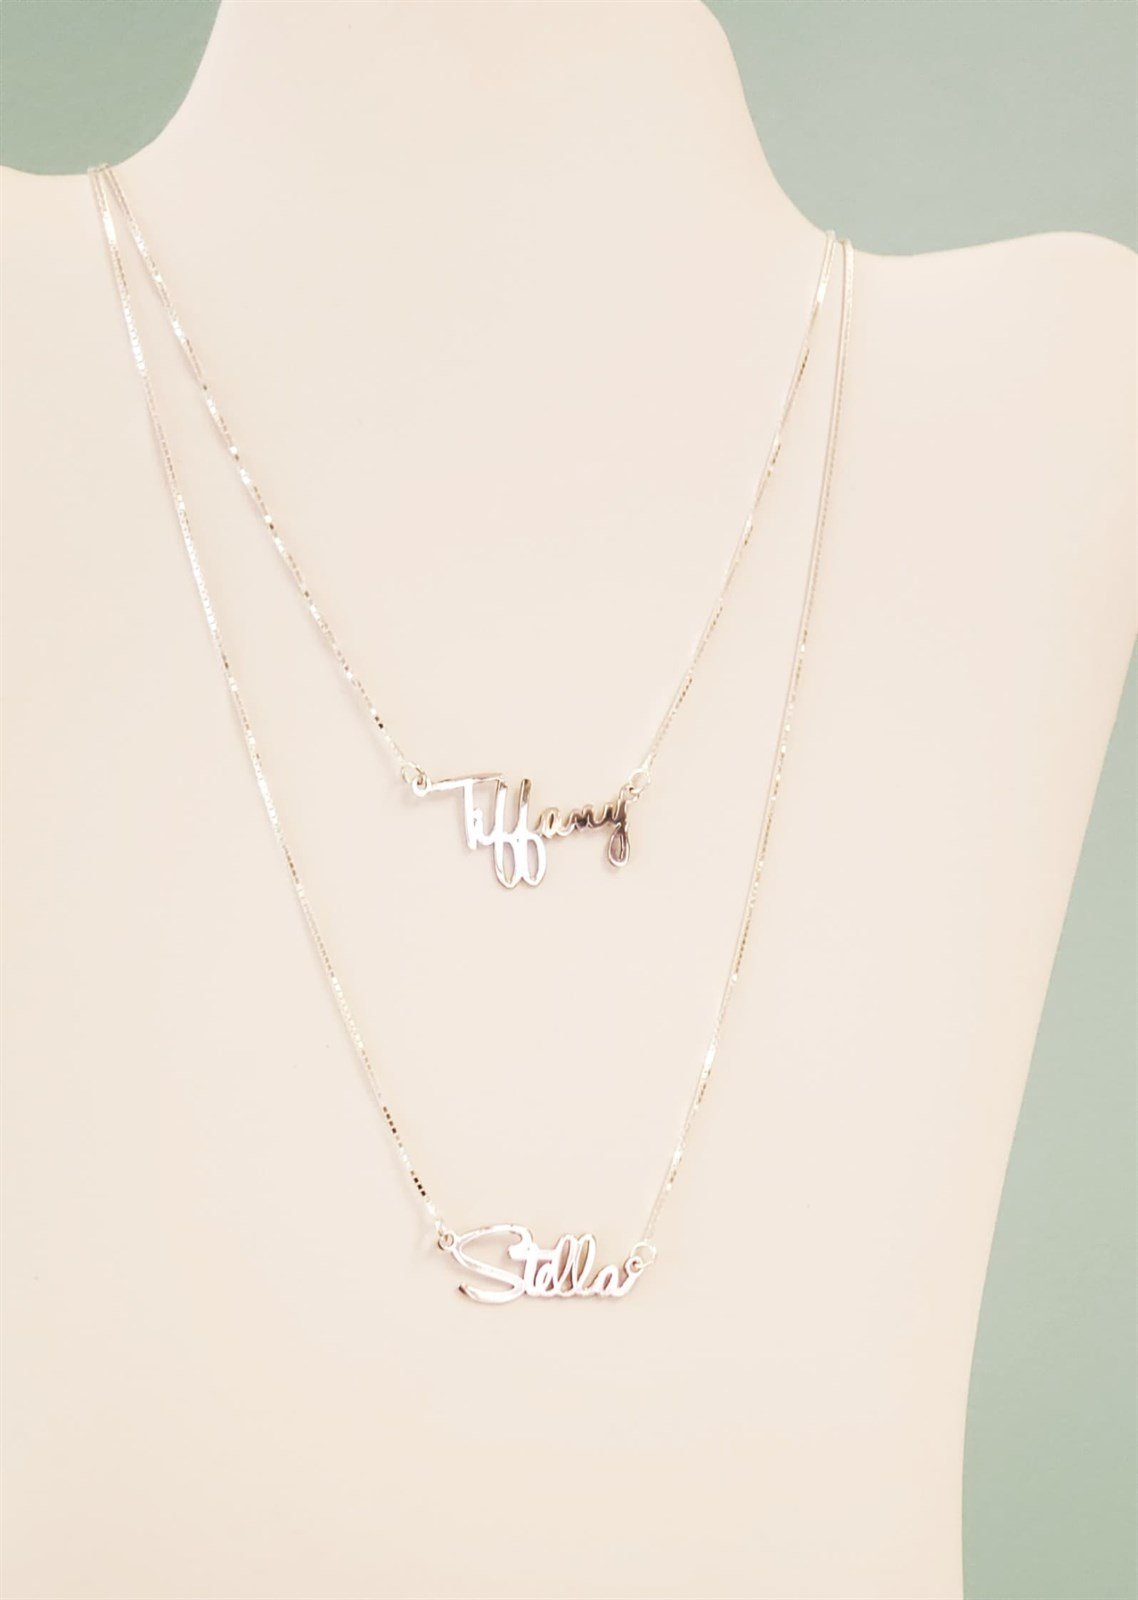 HH01 Dainty name necklace.